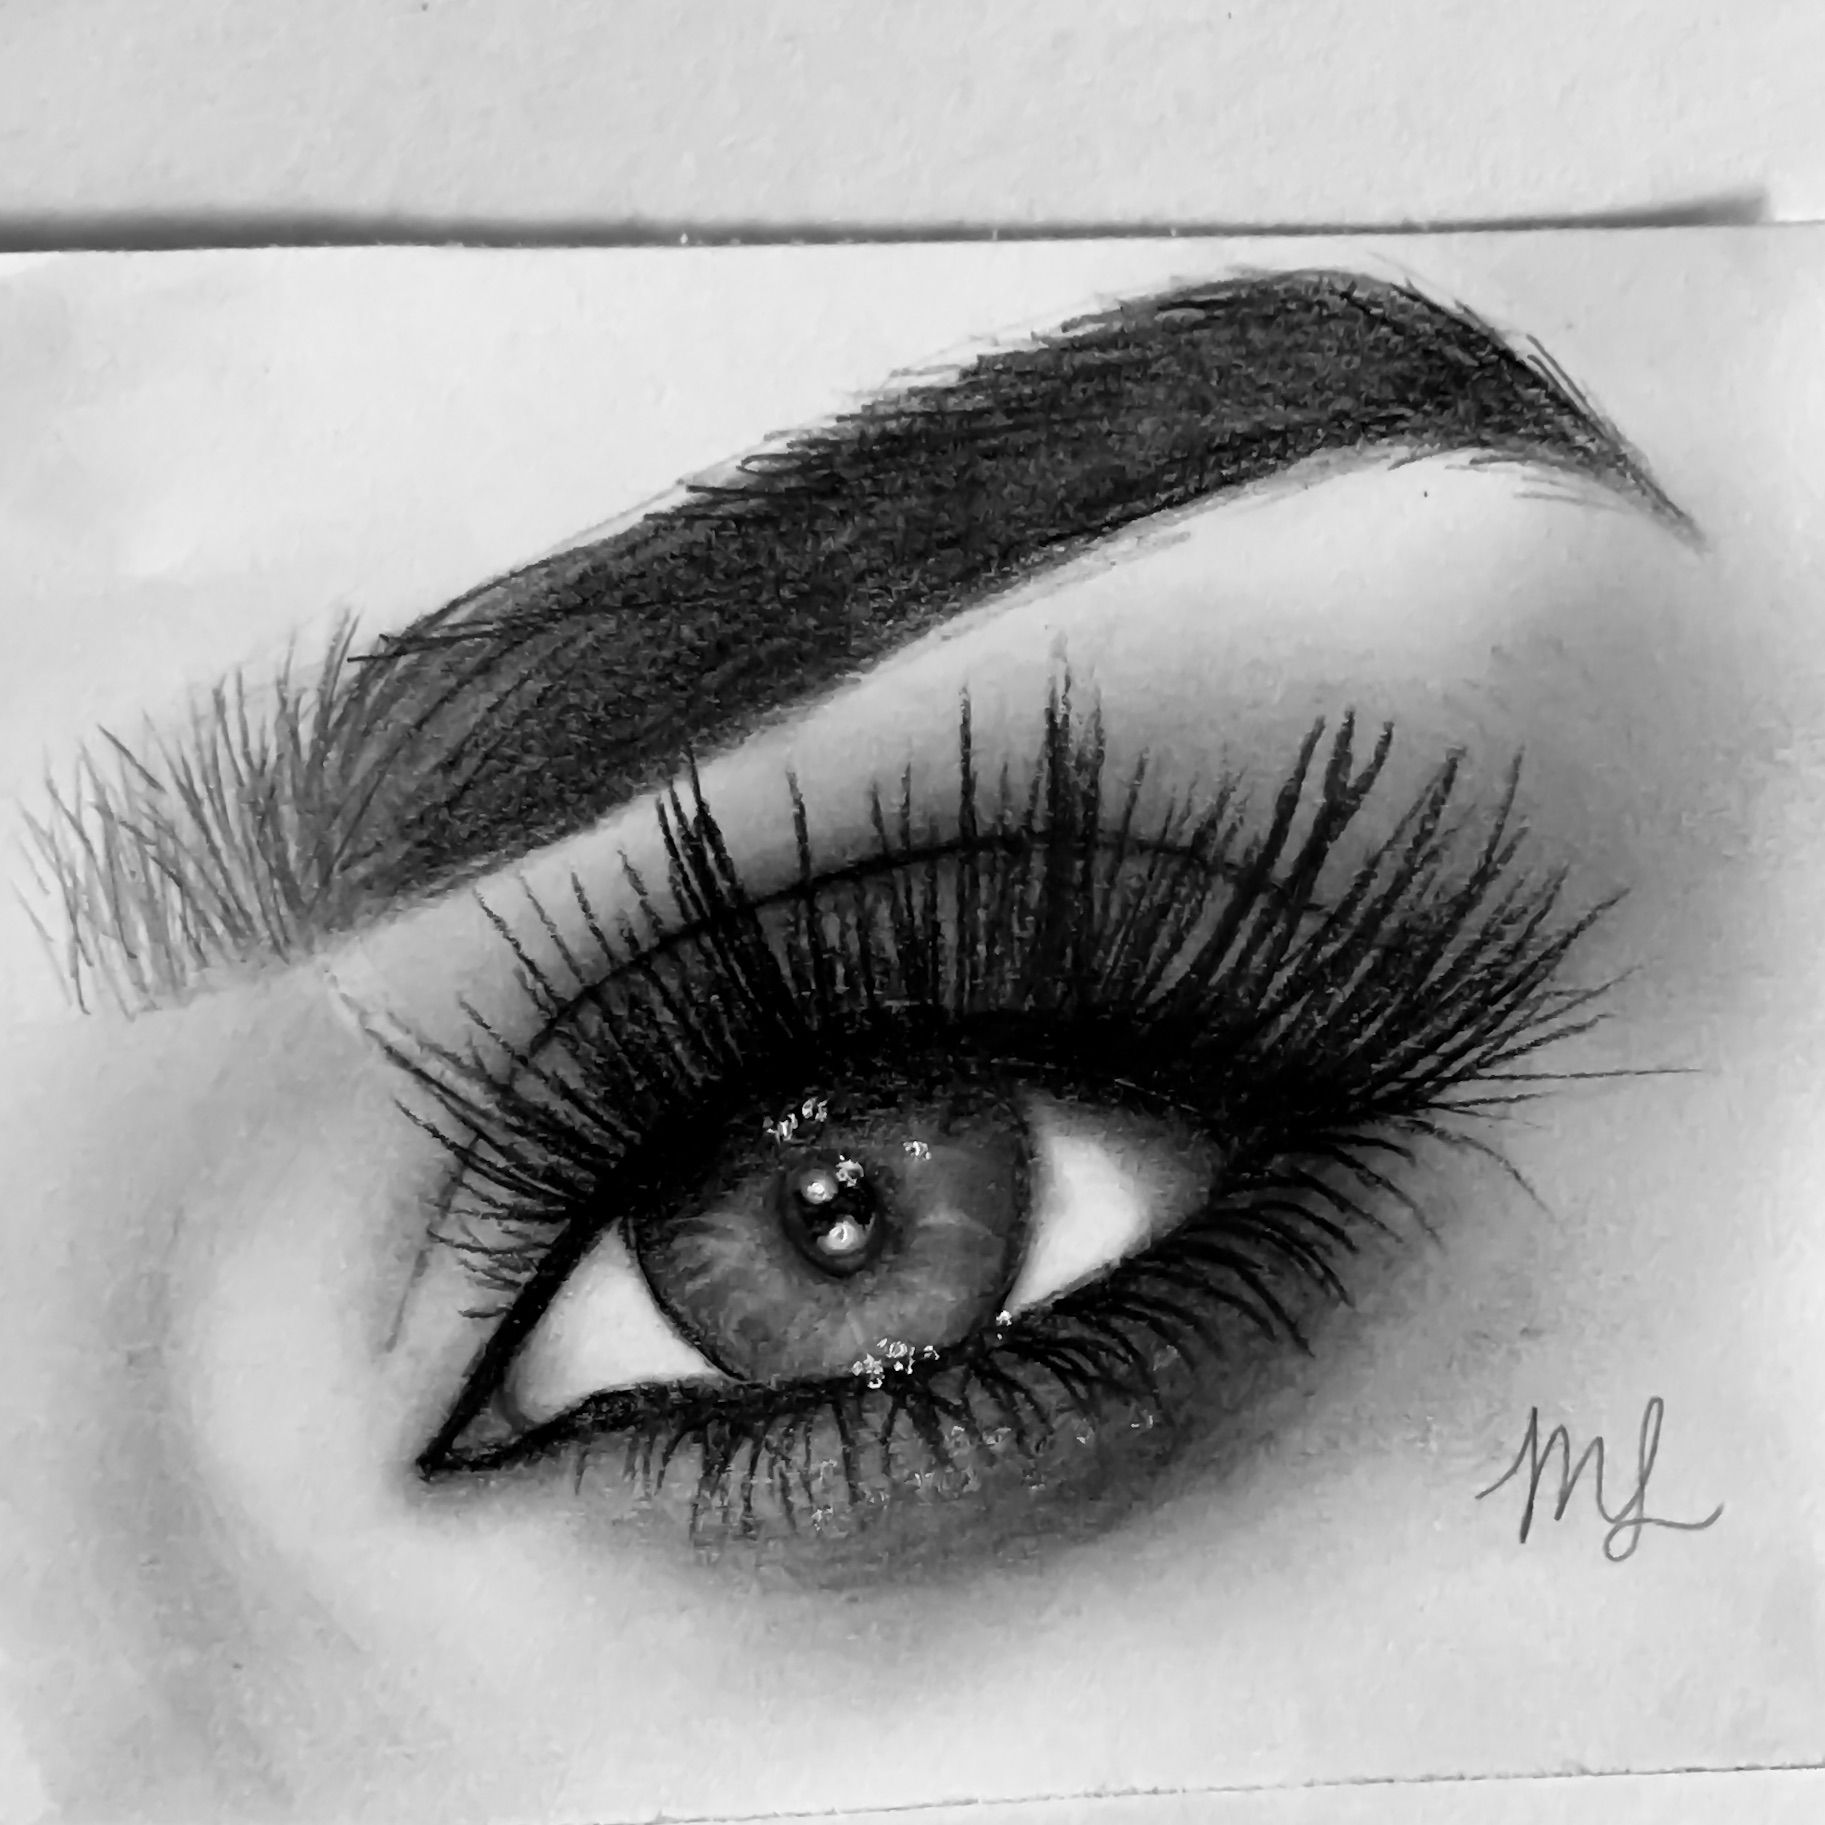 Eye Drawing: Another Eye Drawing Done With Graphite Pencils! #eye #art